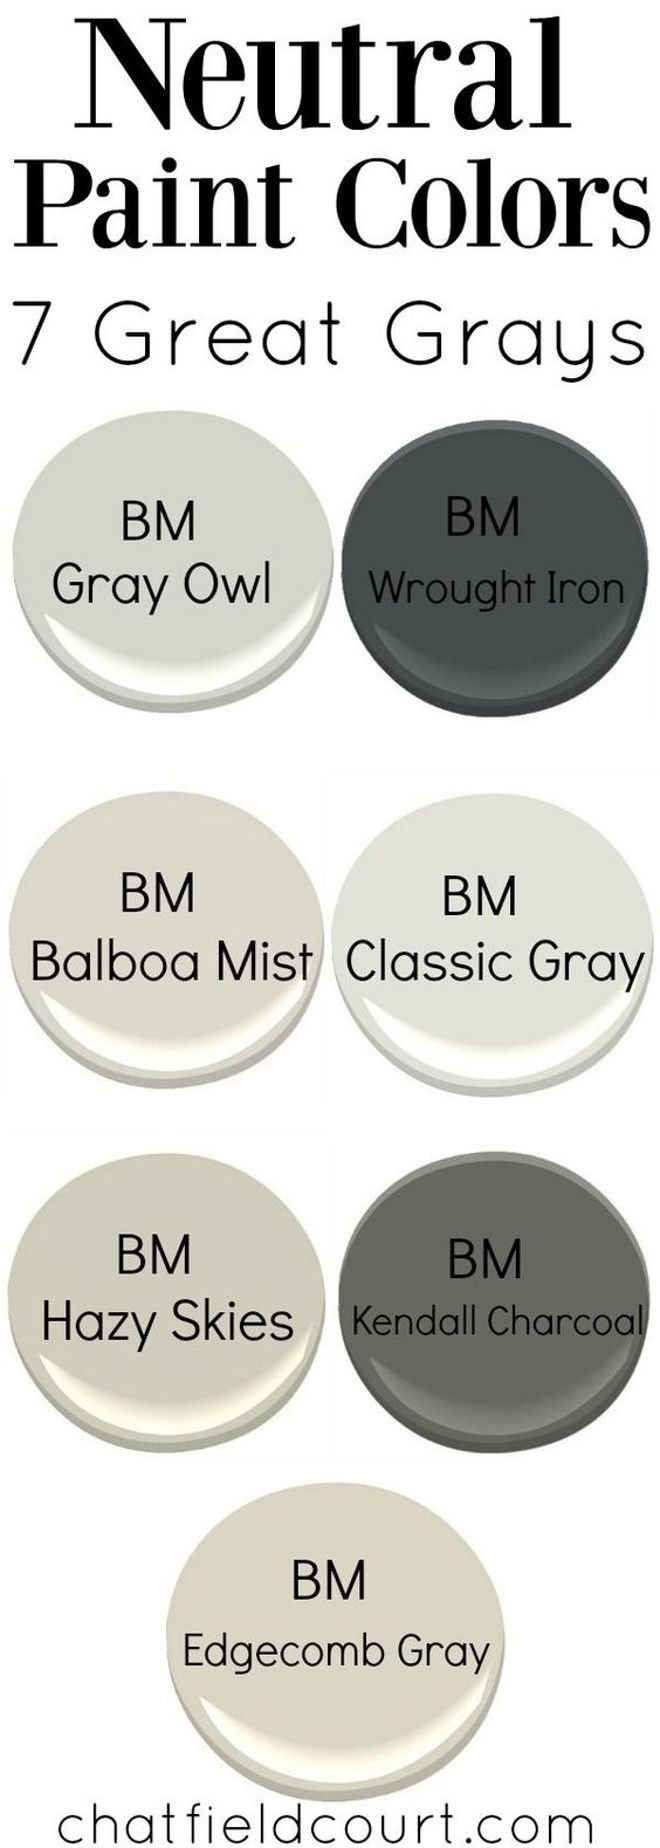 Might choose a 'moody' color for the wine room such as Kendall Charcoal?